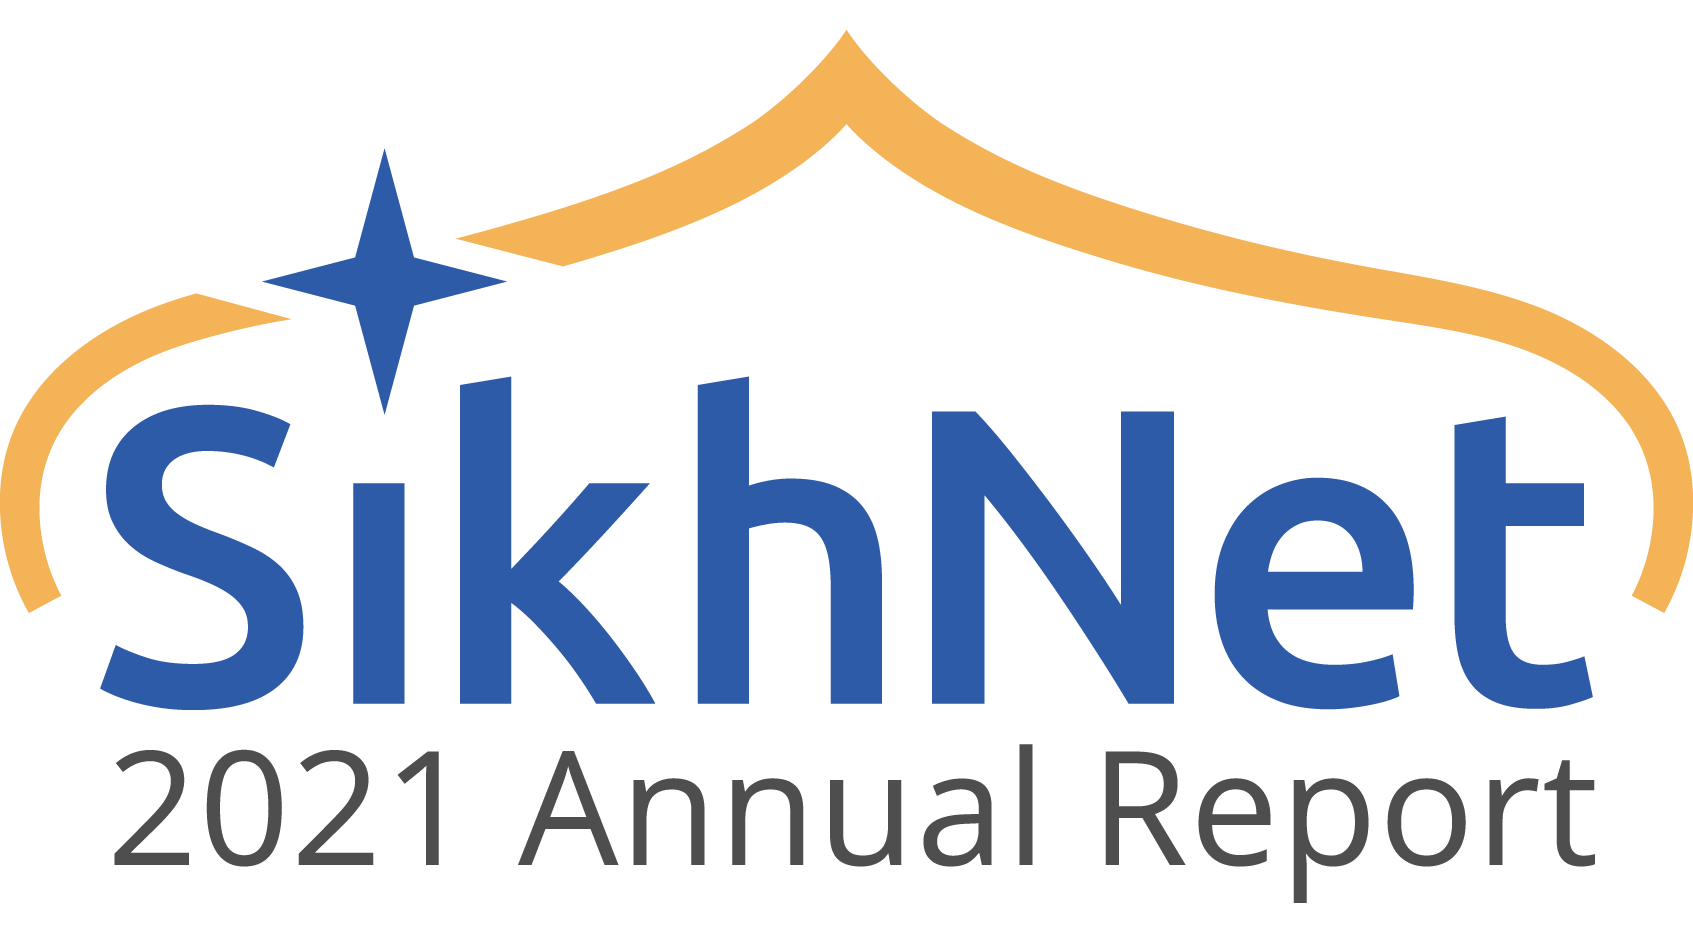 SikhNet Annual Report  I  2021